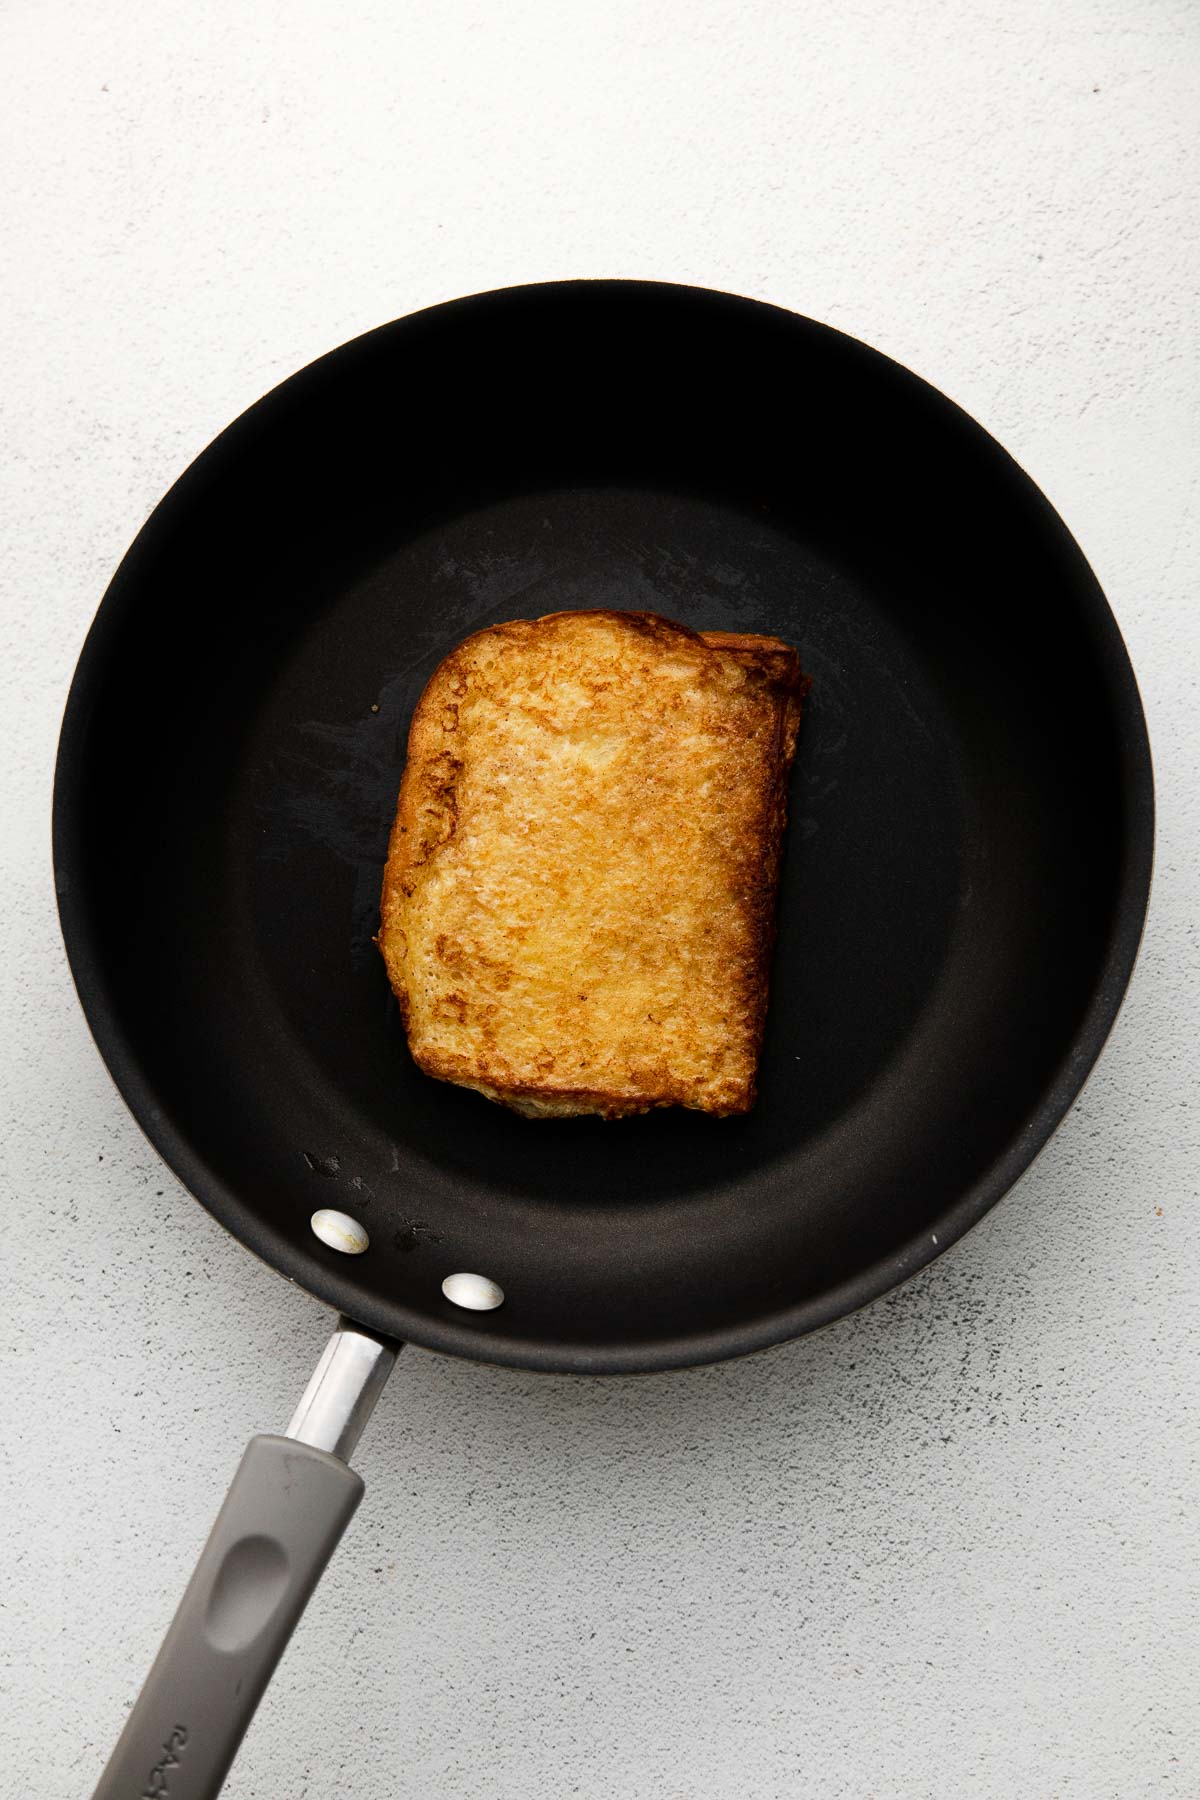 a black skillet with a slice of golden brown slice of brioche french toast